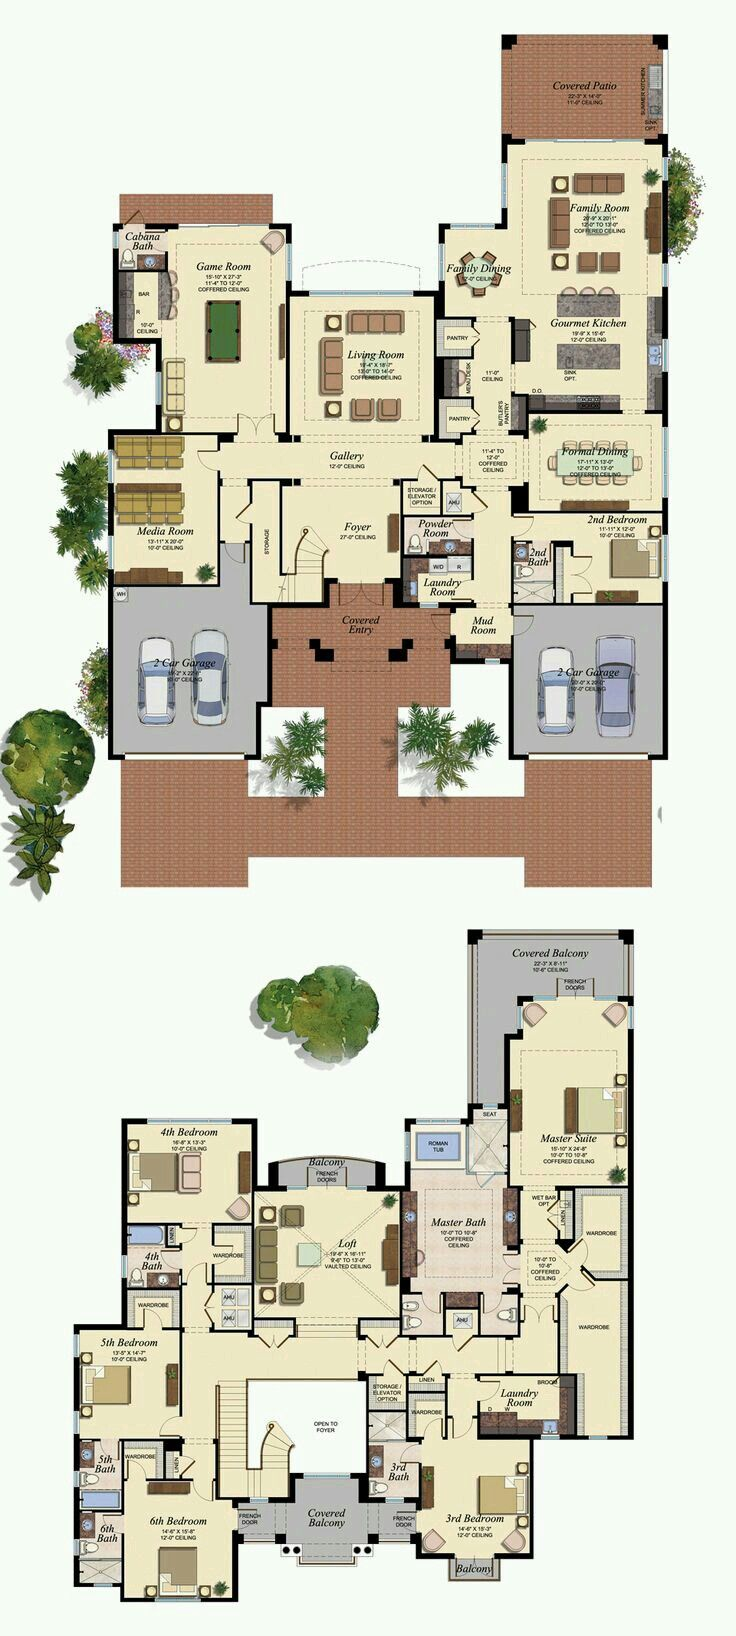 2 storey house plan - bedroom 2 as study